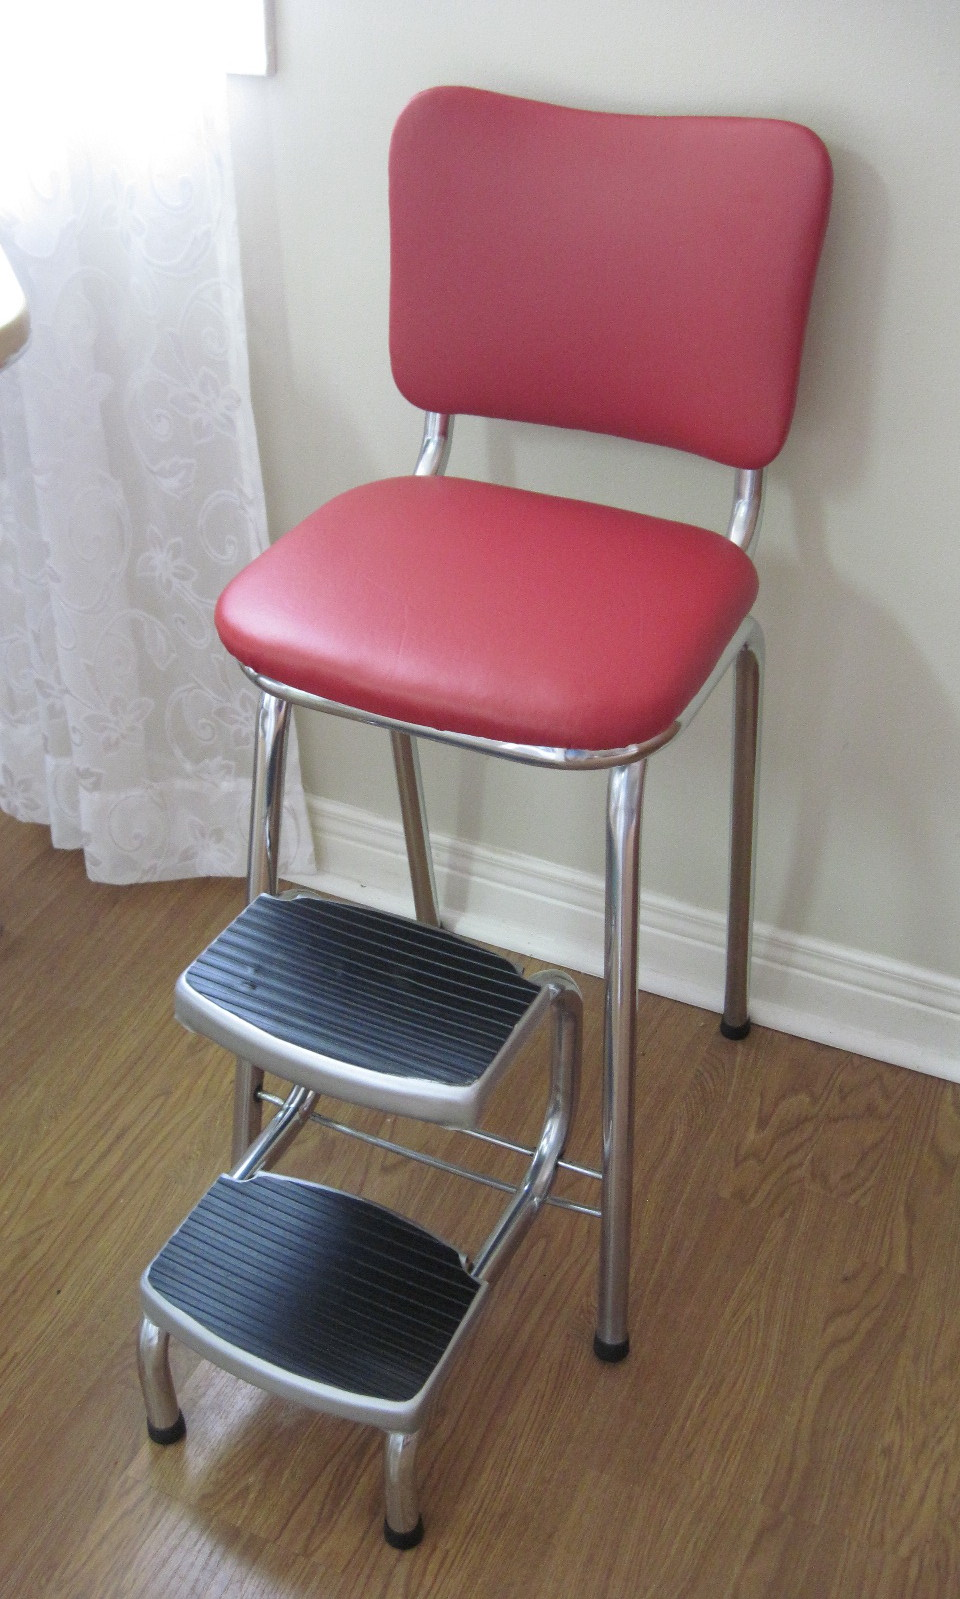 step stool & Vintage Red Vinyl Mid Century Chrome Step Stool | fabfindsblog islam-shia.org